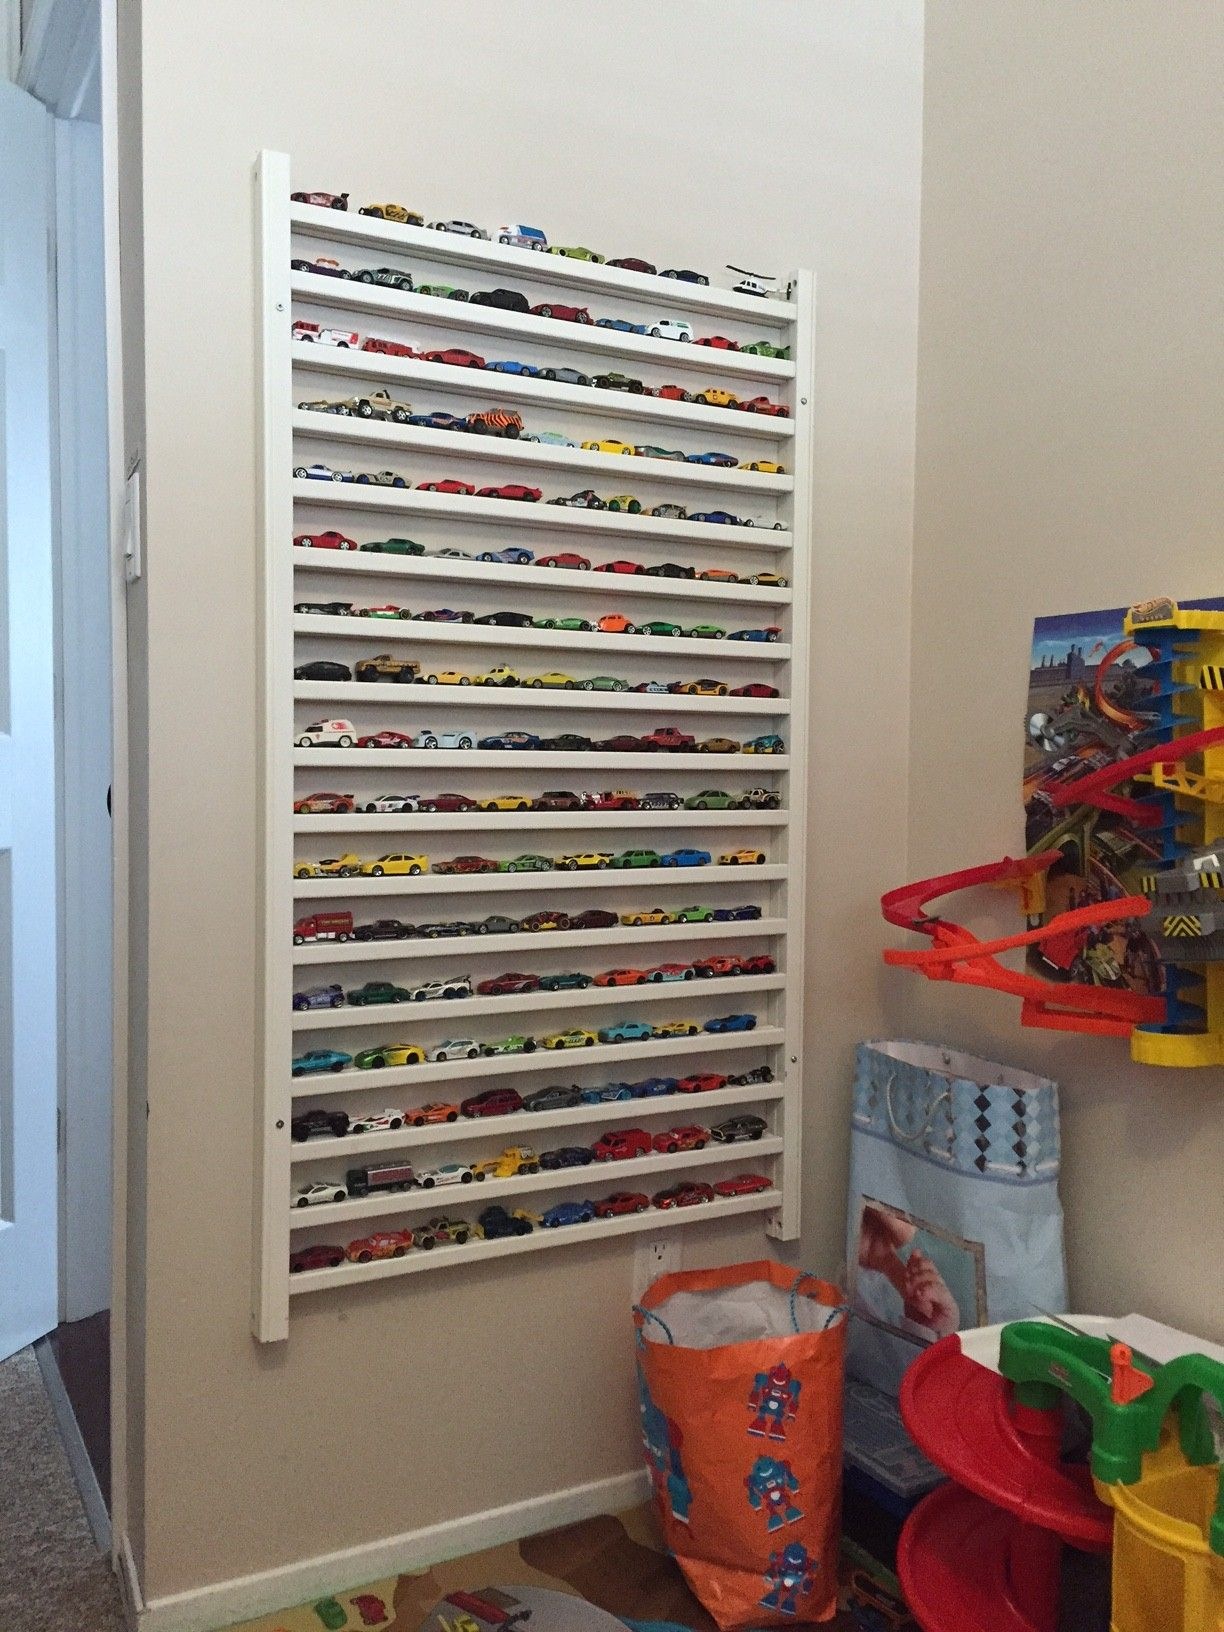 a bookshelf i made for josh's room from the removed side of the  - diy hot wheels matchbox diecast car display using side rails from an oldcrib (trains